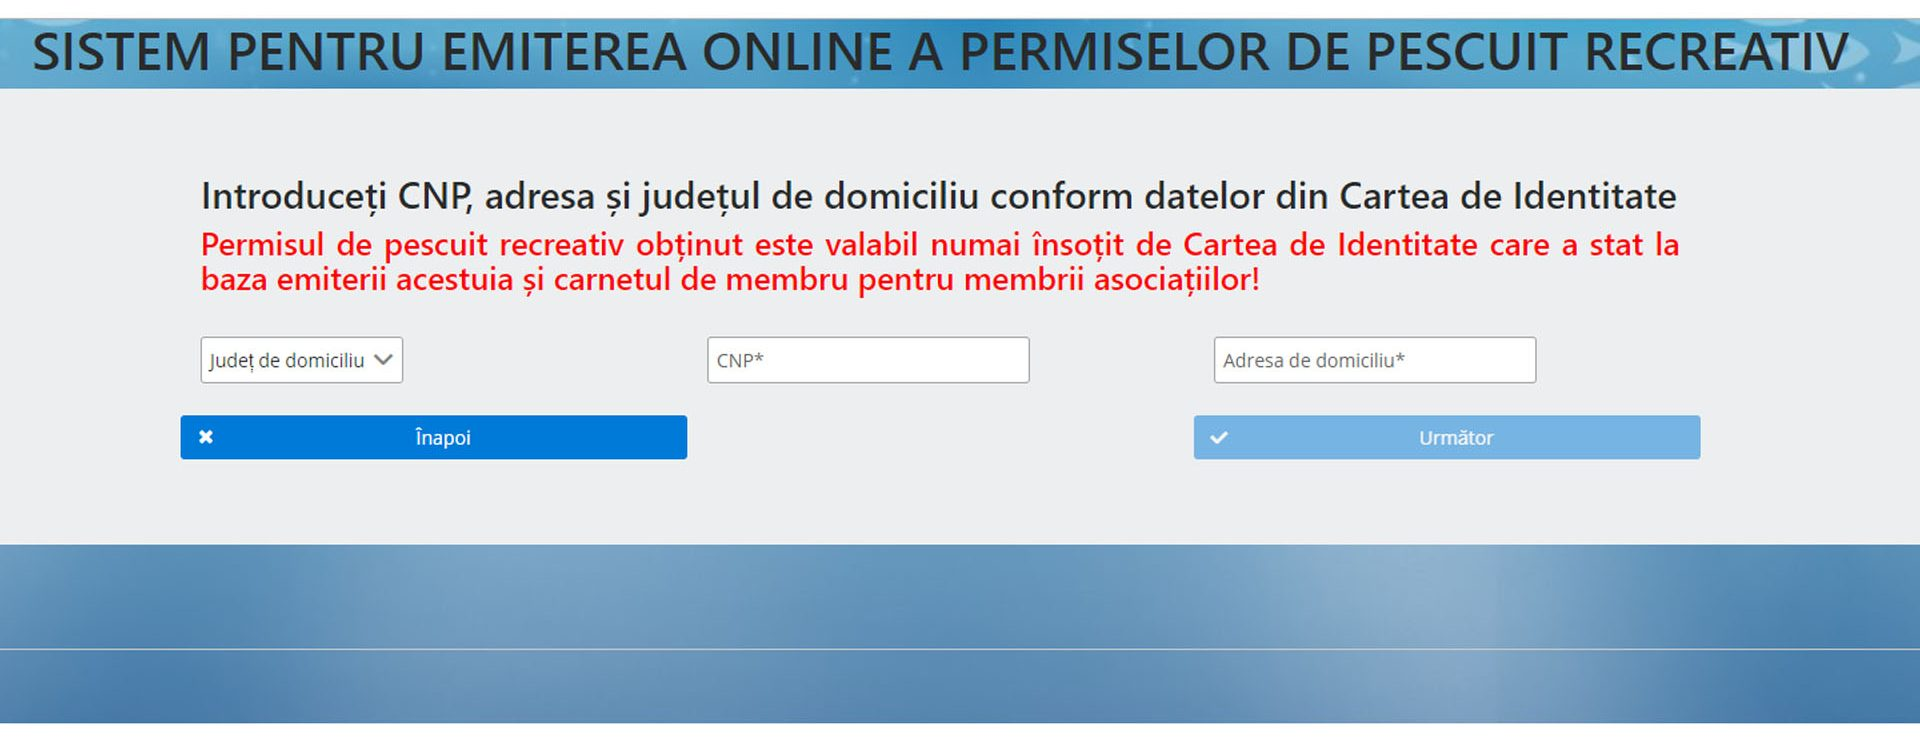 permis de pescuit on line